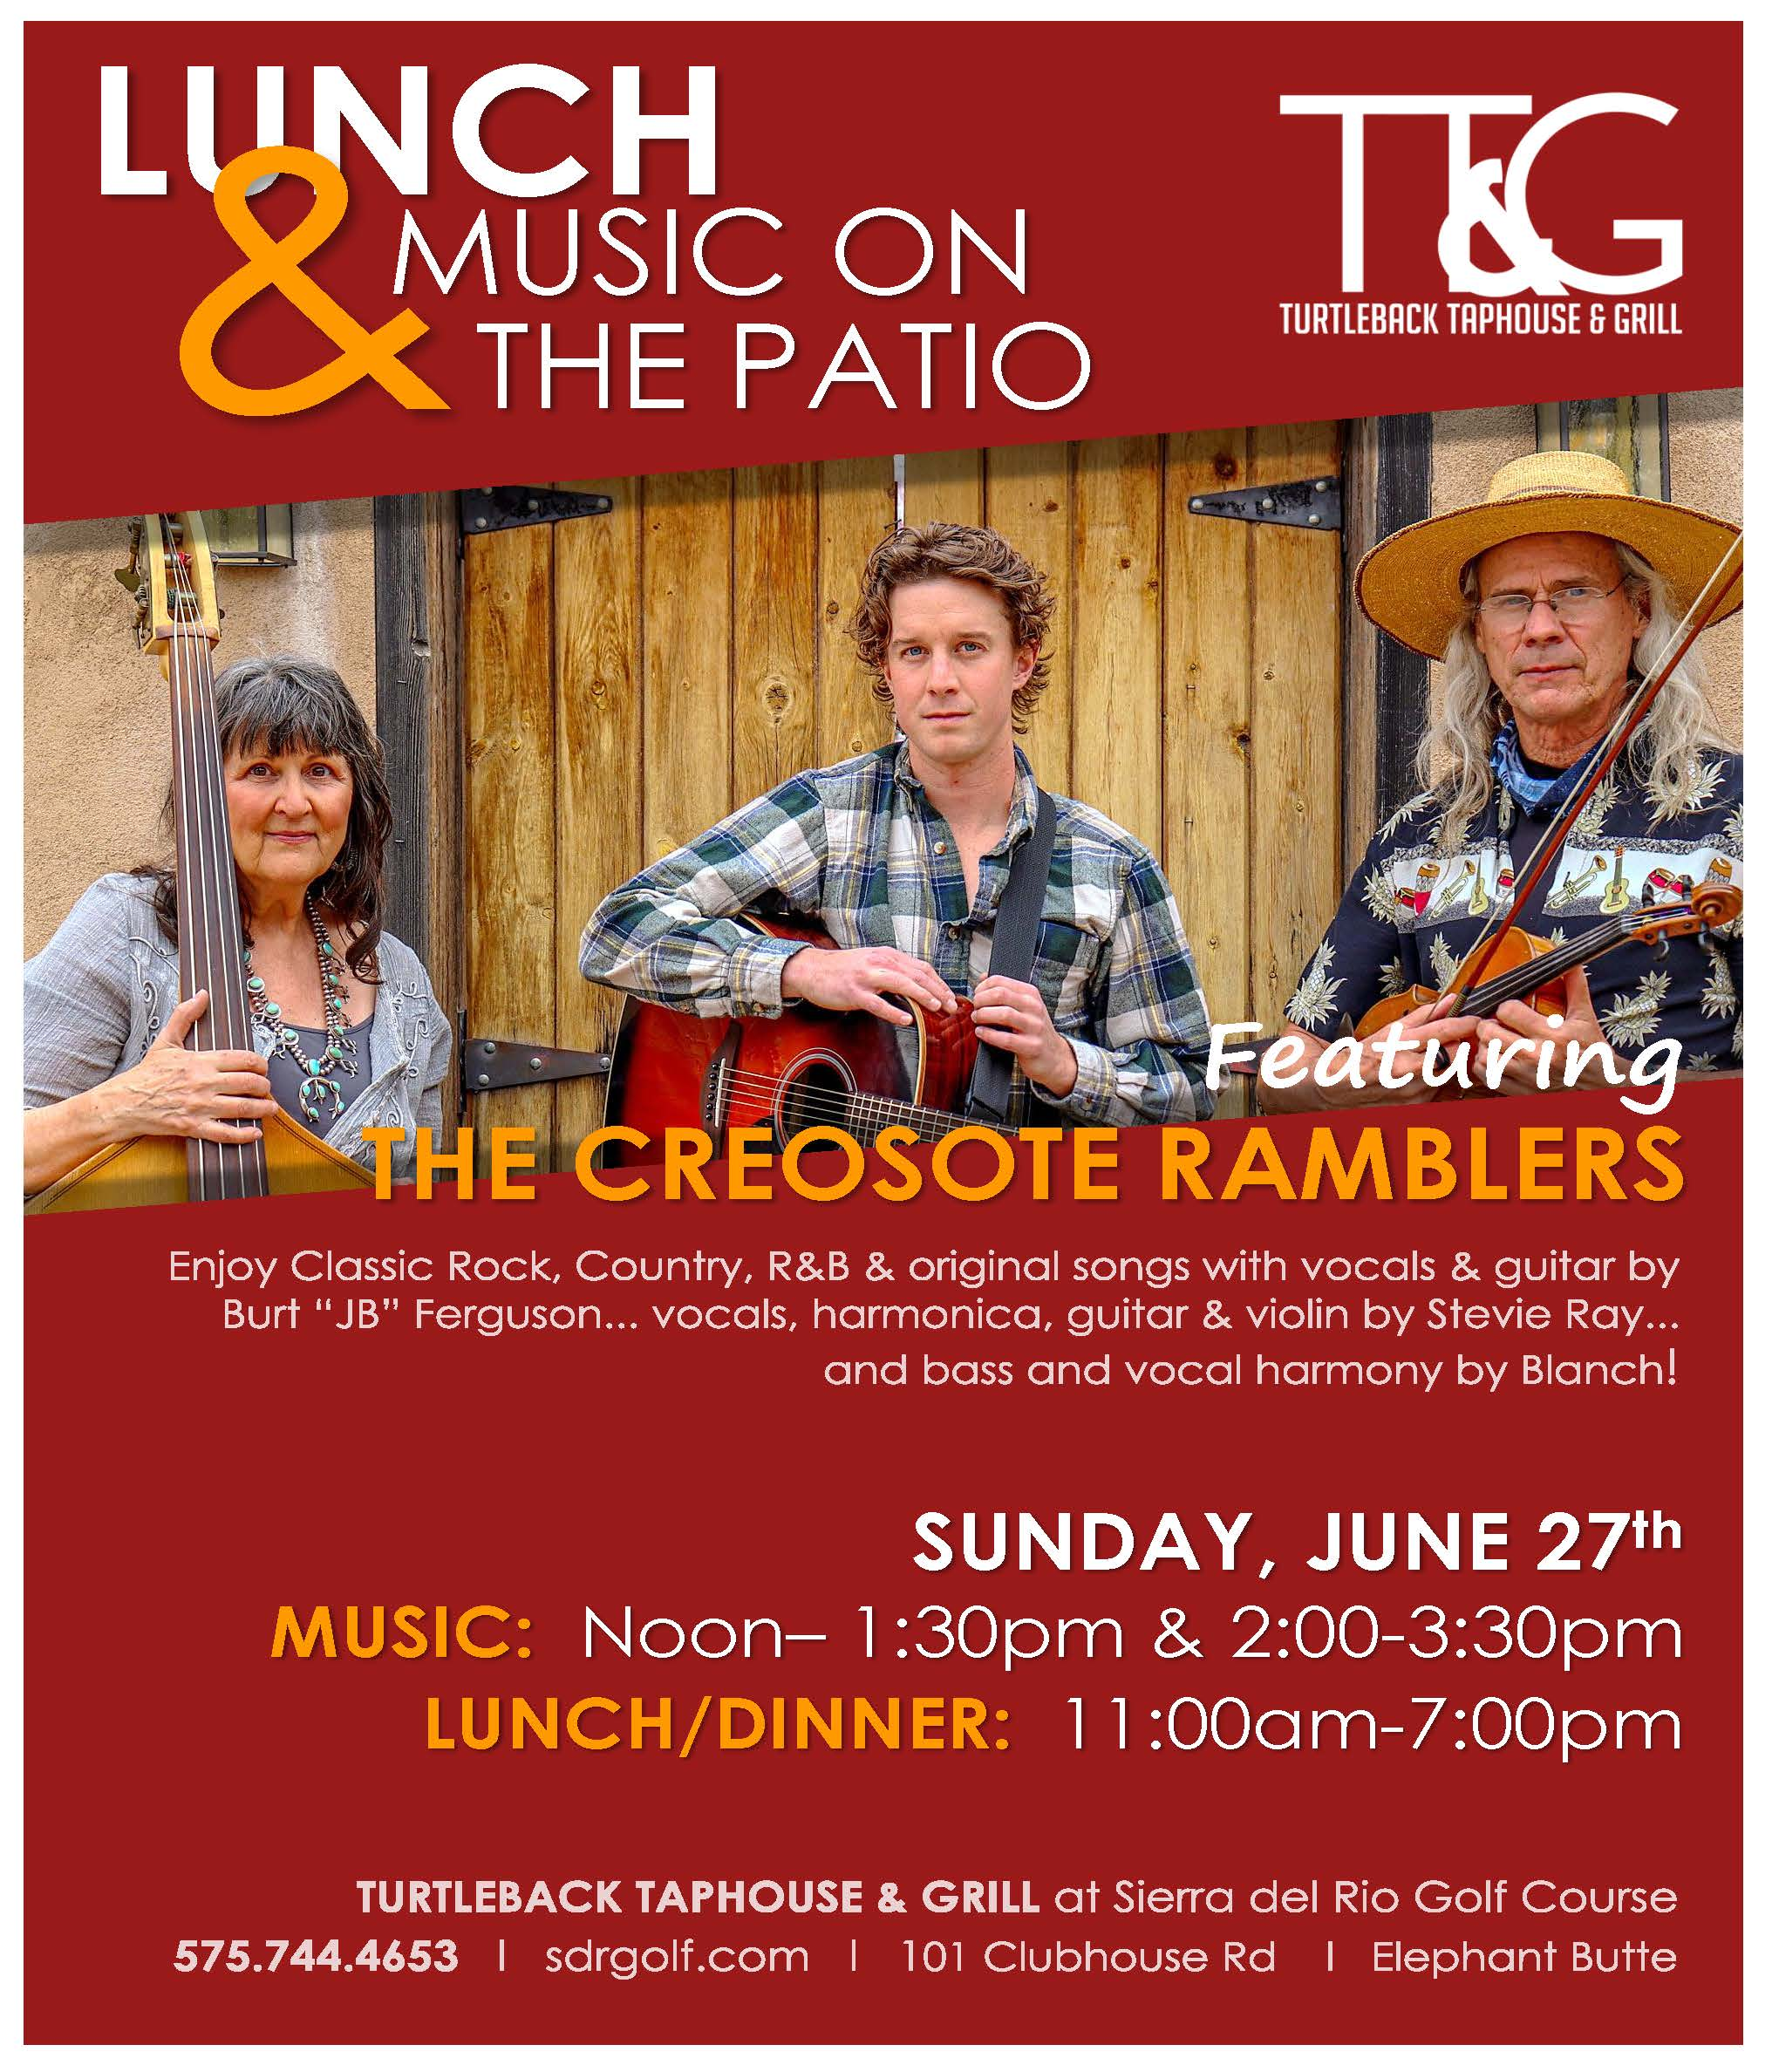 LUNCH & MUSIC ON THE PATIO at Sierra del Rio